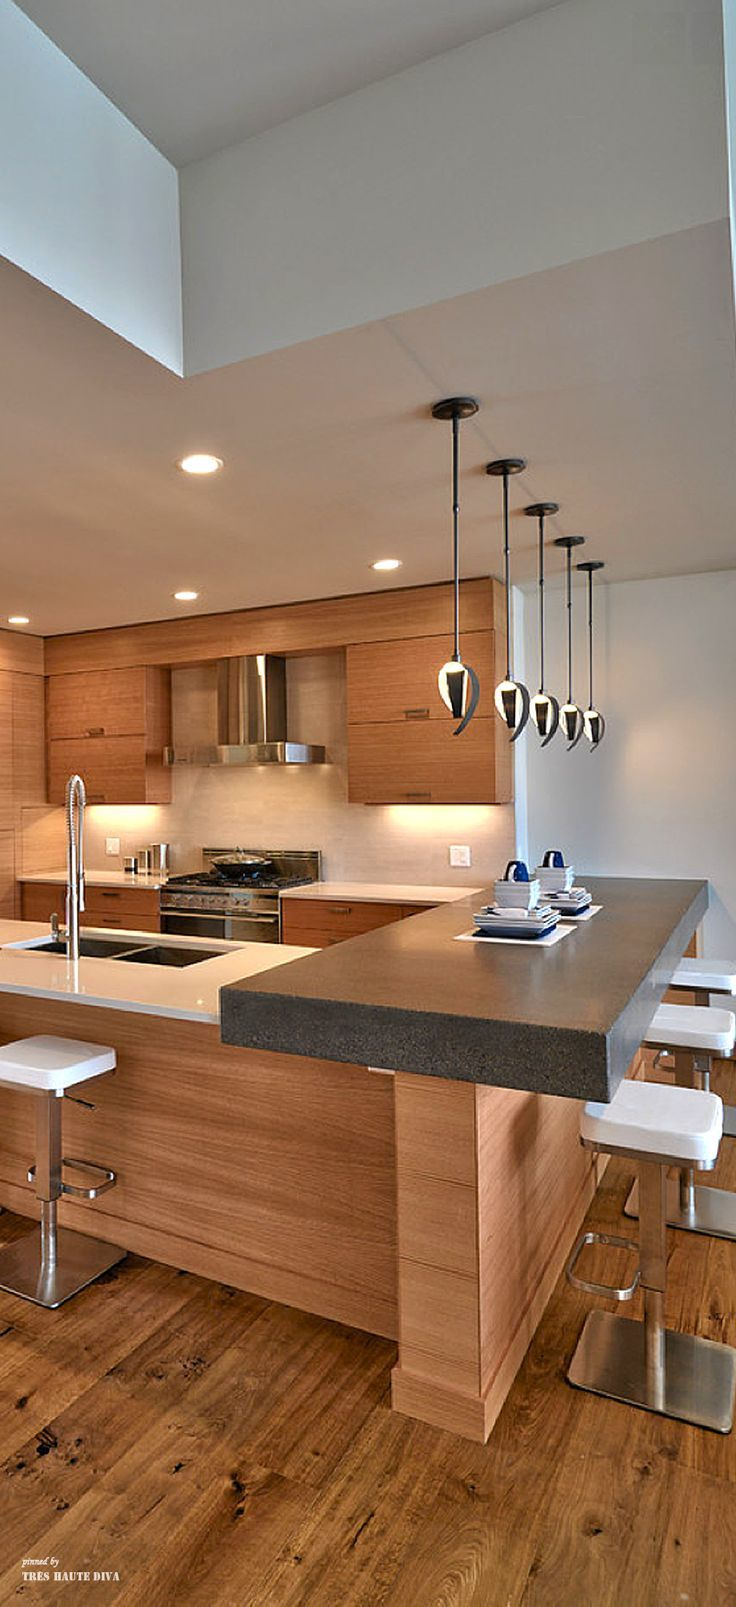 Contemporary kitchen - Contrasting colour and raised bench height for breakfast ... - http://centophobe.com/contemporary-kitchen-contrasting-colour-and-raised-bench-height-for-breakfast/